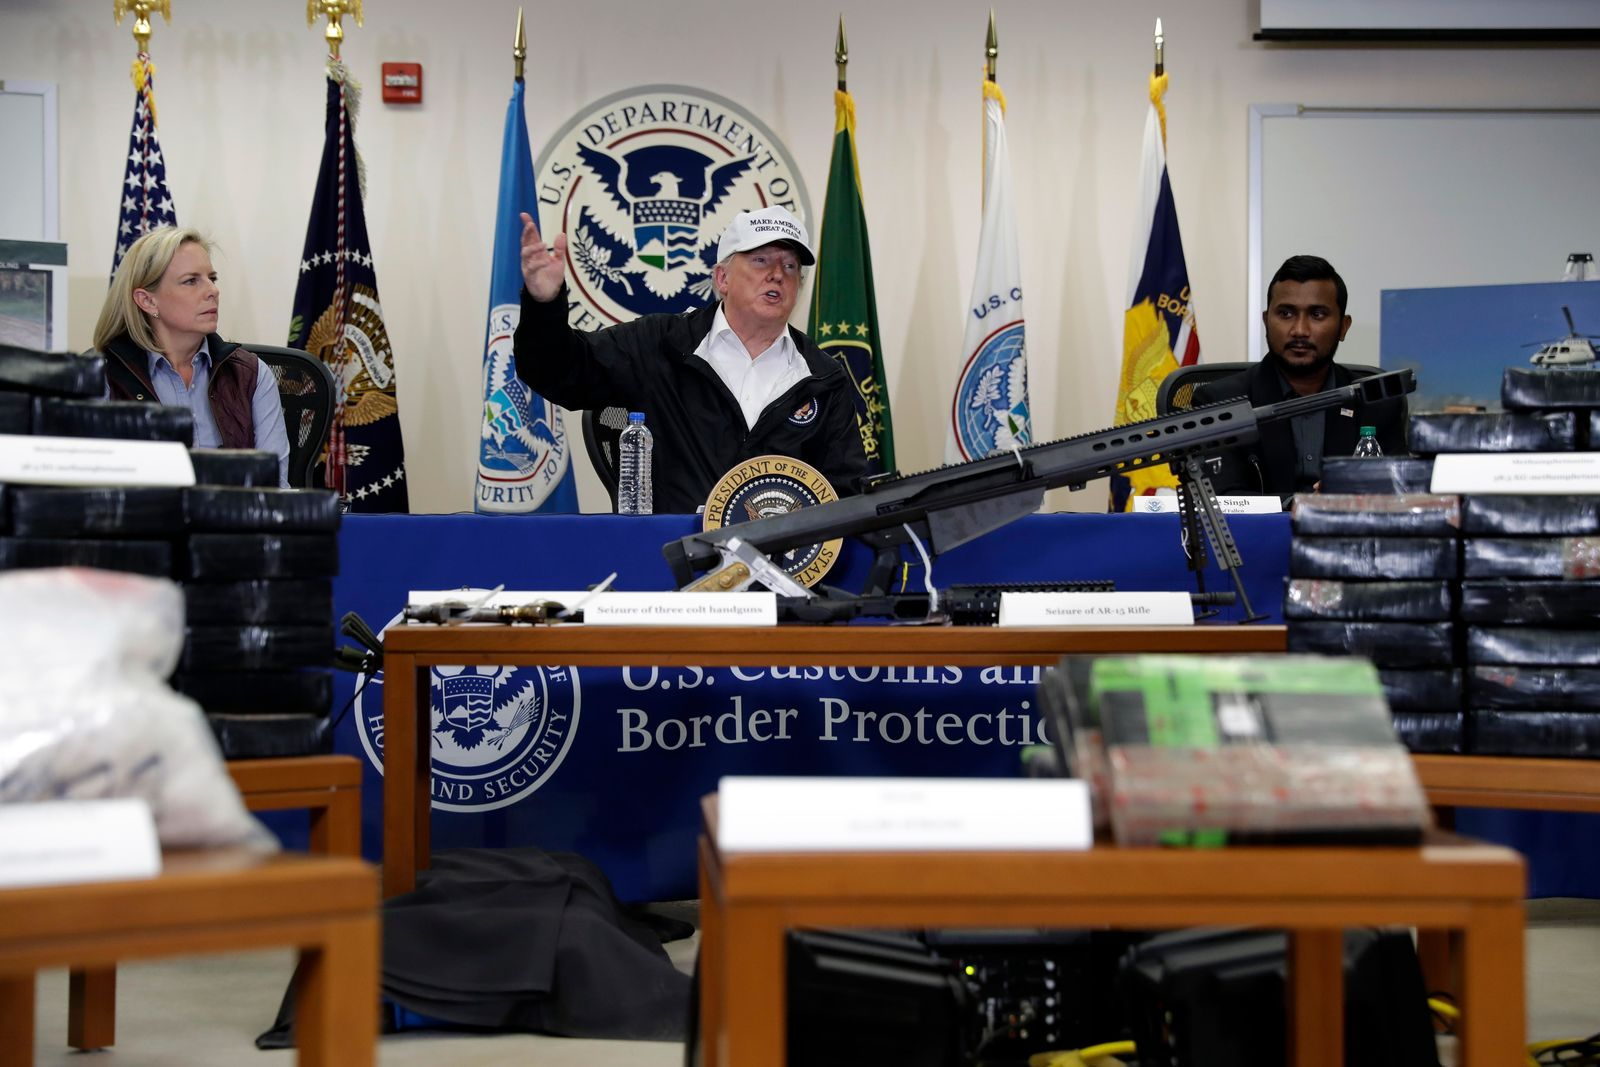 With weapons and illegal that have been seized by U.S. Customs and Border Protection in the foreground, President Donald Trump speaks at a roundtable on immigration and border security at U.S. Border Patrol McAllen Station, during a visit to the southern border, Thursday, Jan. 10, 2019, in McAllen, Texas. (AP Photo/ Evan Vucci)